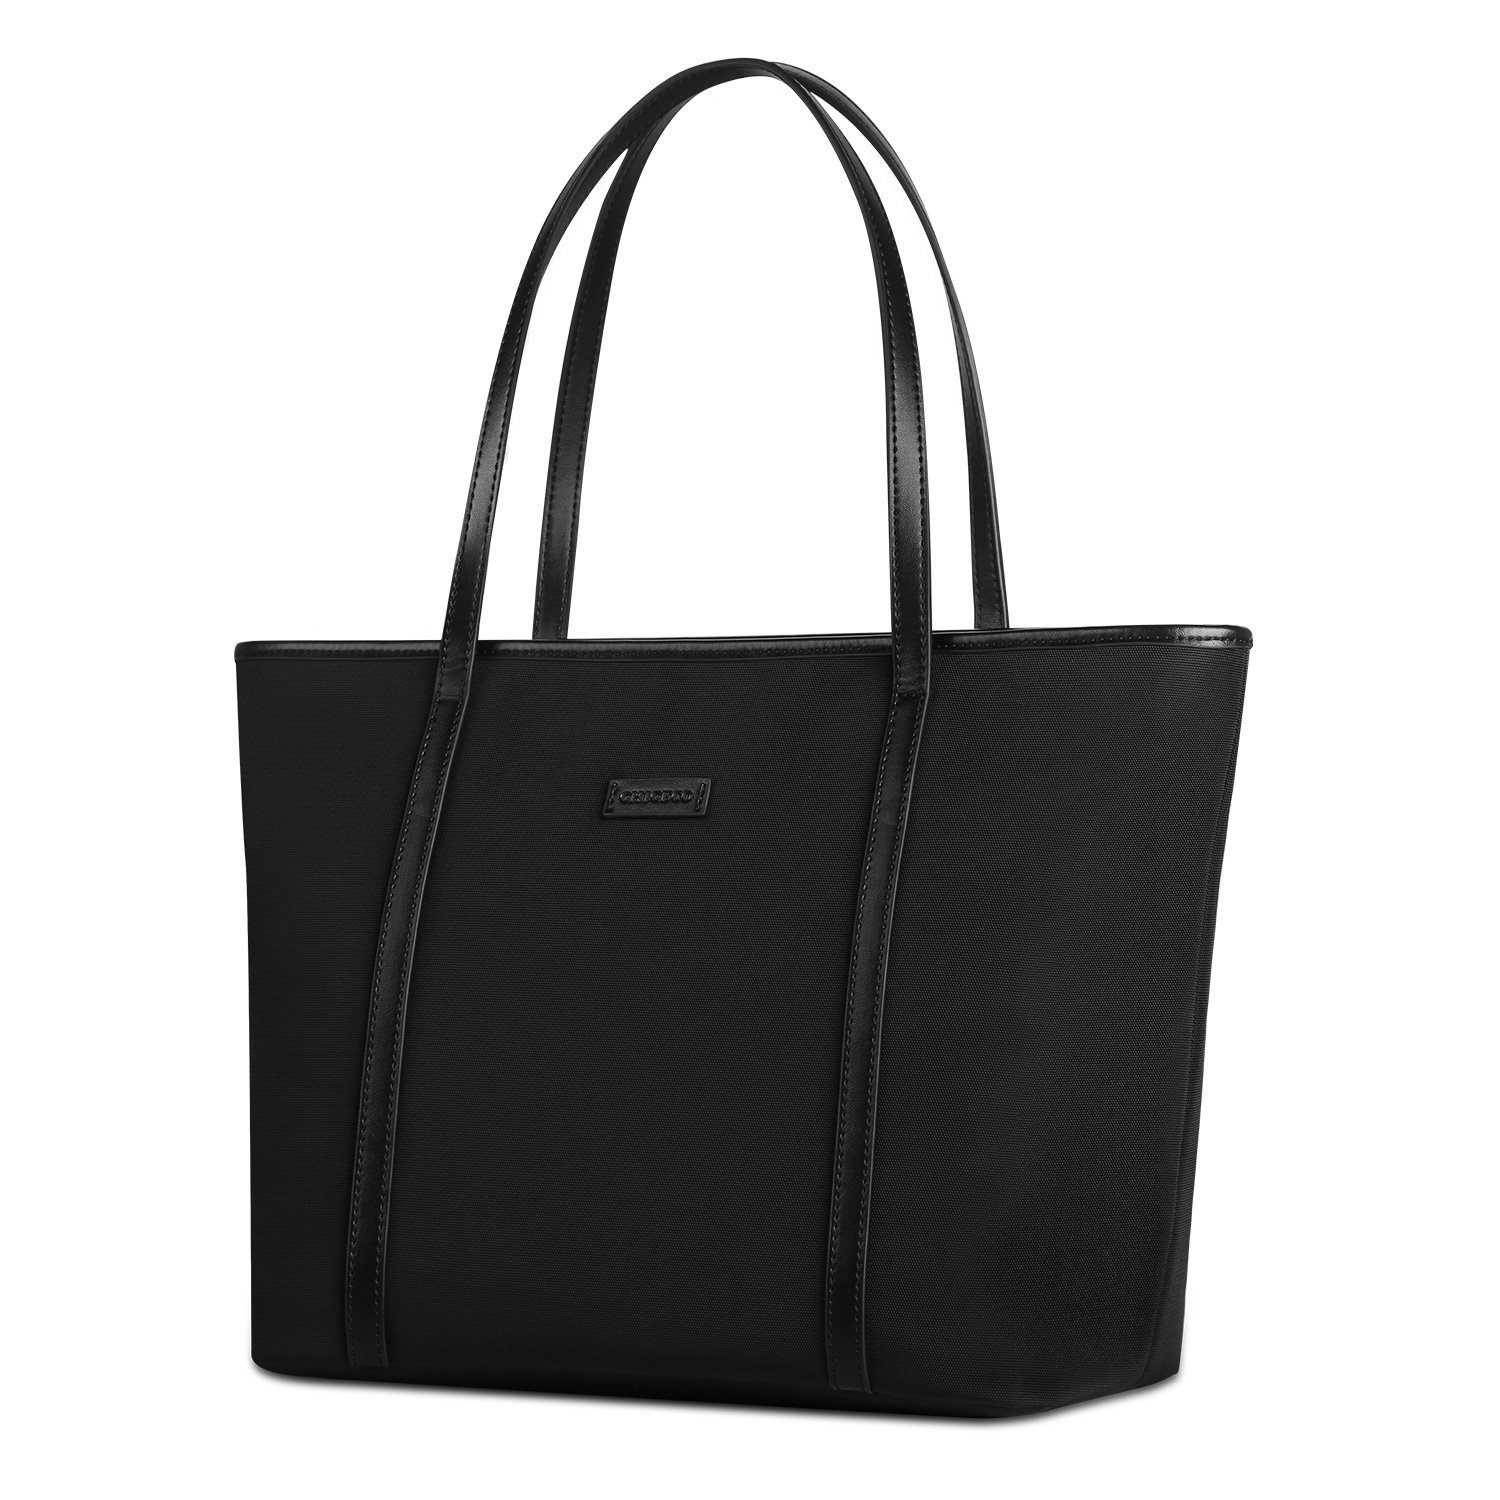 black shoulder bag chiceco basic 14-inch laptop work tote bag for women - oxford nylon / ijeclfh